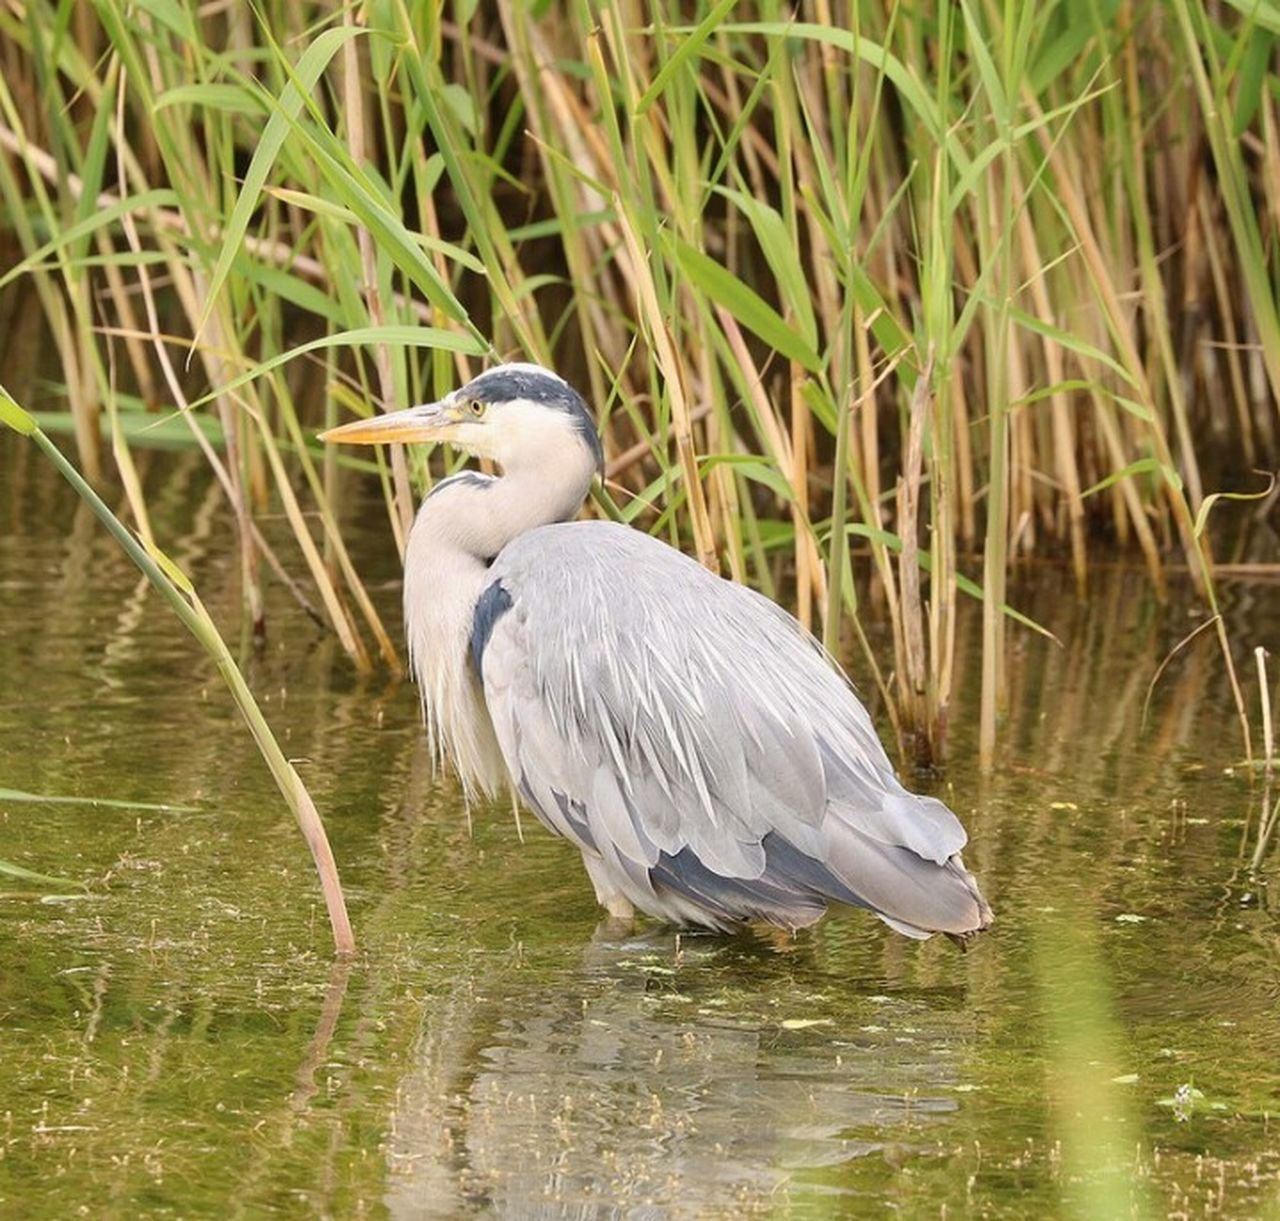 bird, heron, one animal, lake, animals in the wild, animal wildlife, water, animal themes, nature, gray heron, beauty in nature, day, beak, outdoors, no people, perching, close-up